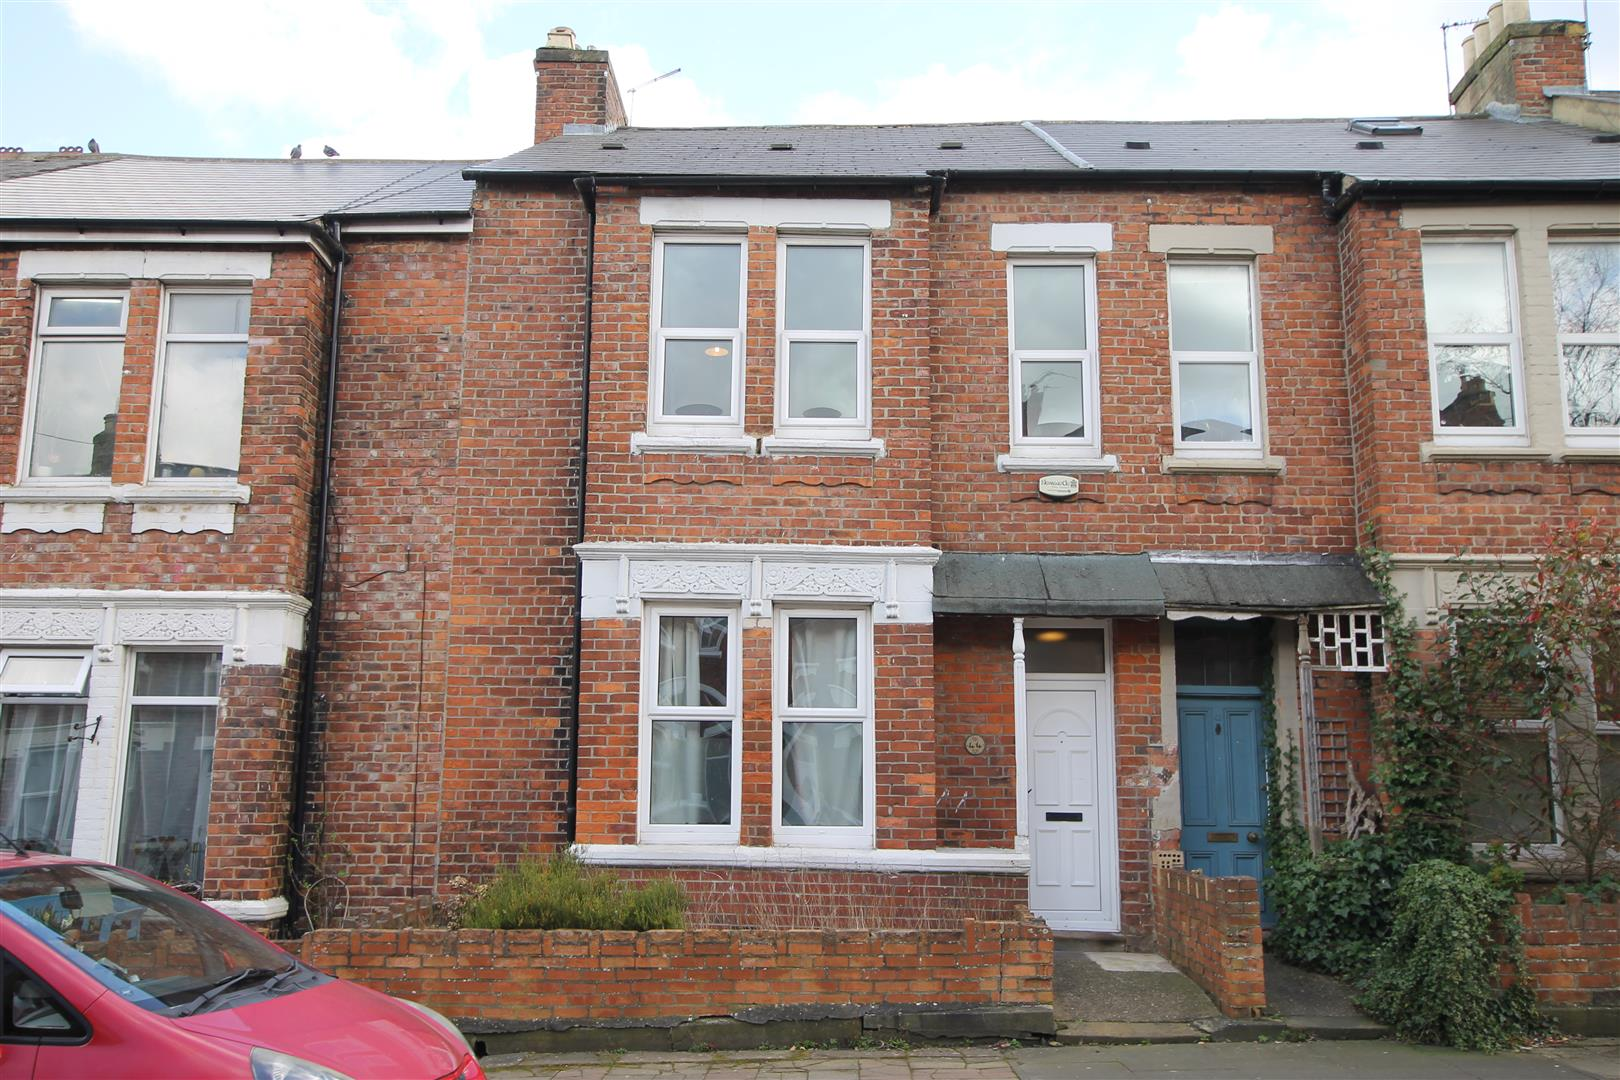 Sidney Grove Newcastle Upon Tyne, 5 Bedrooms  House ,Sold (STC)